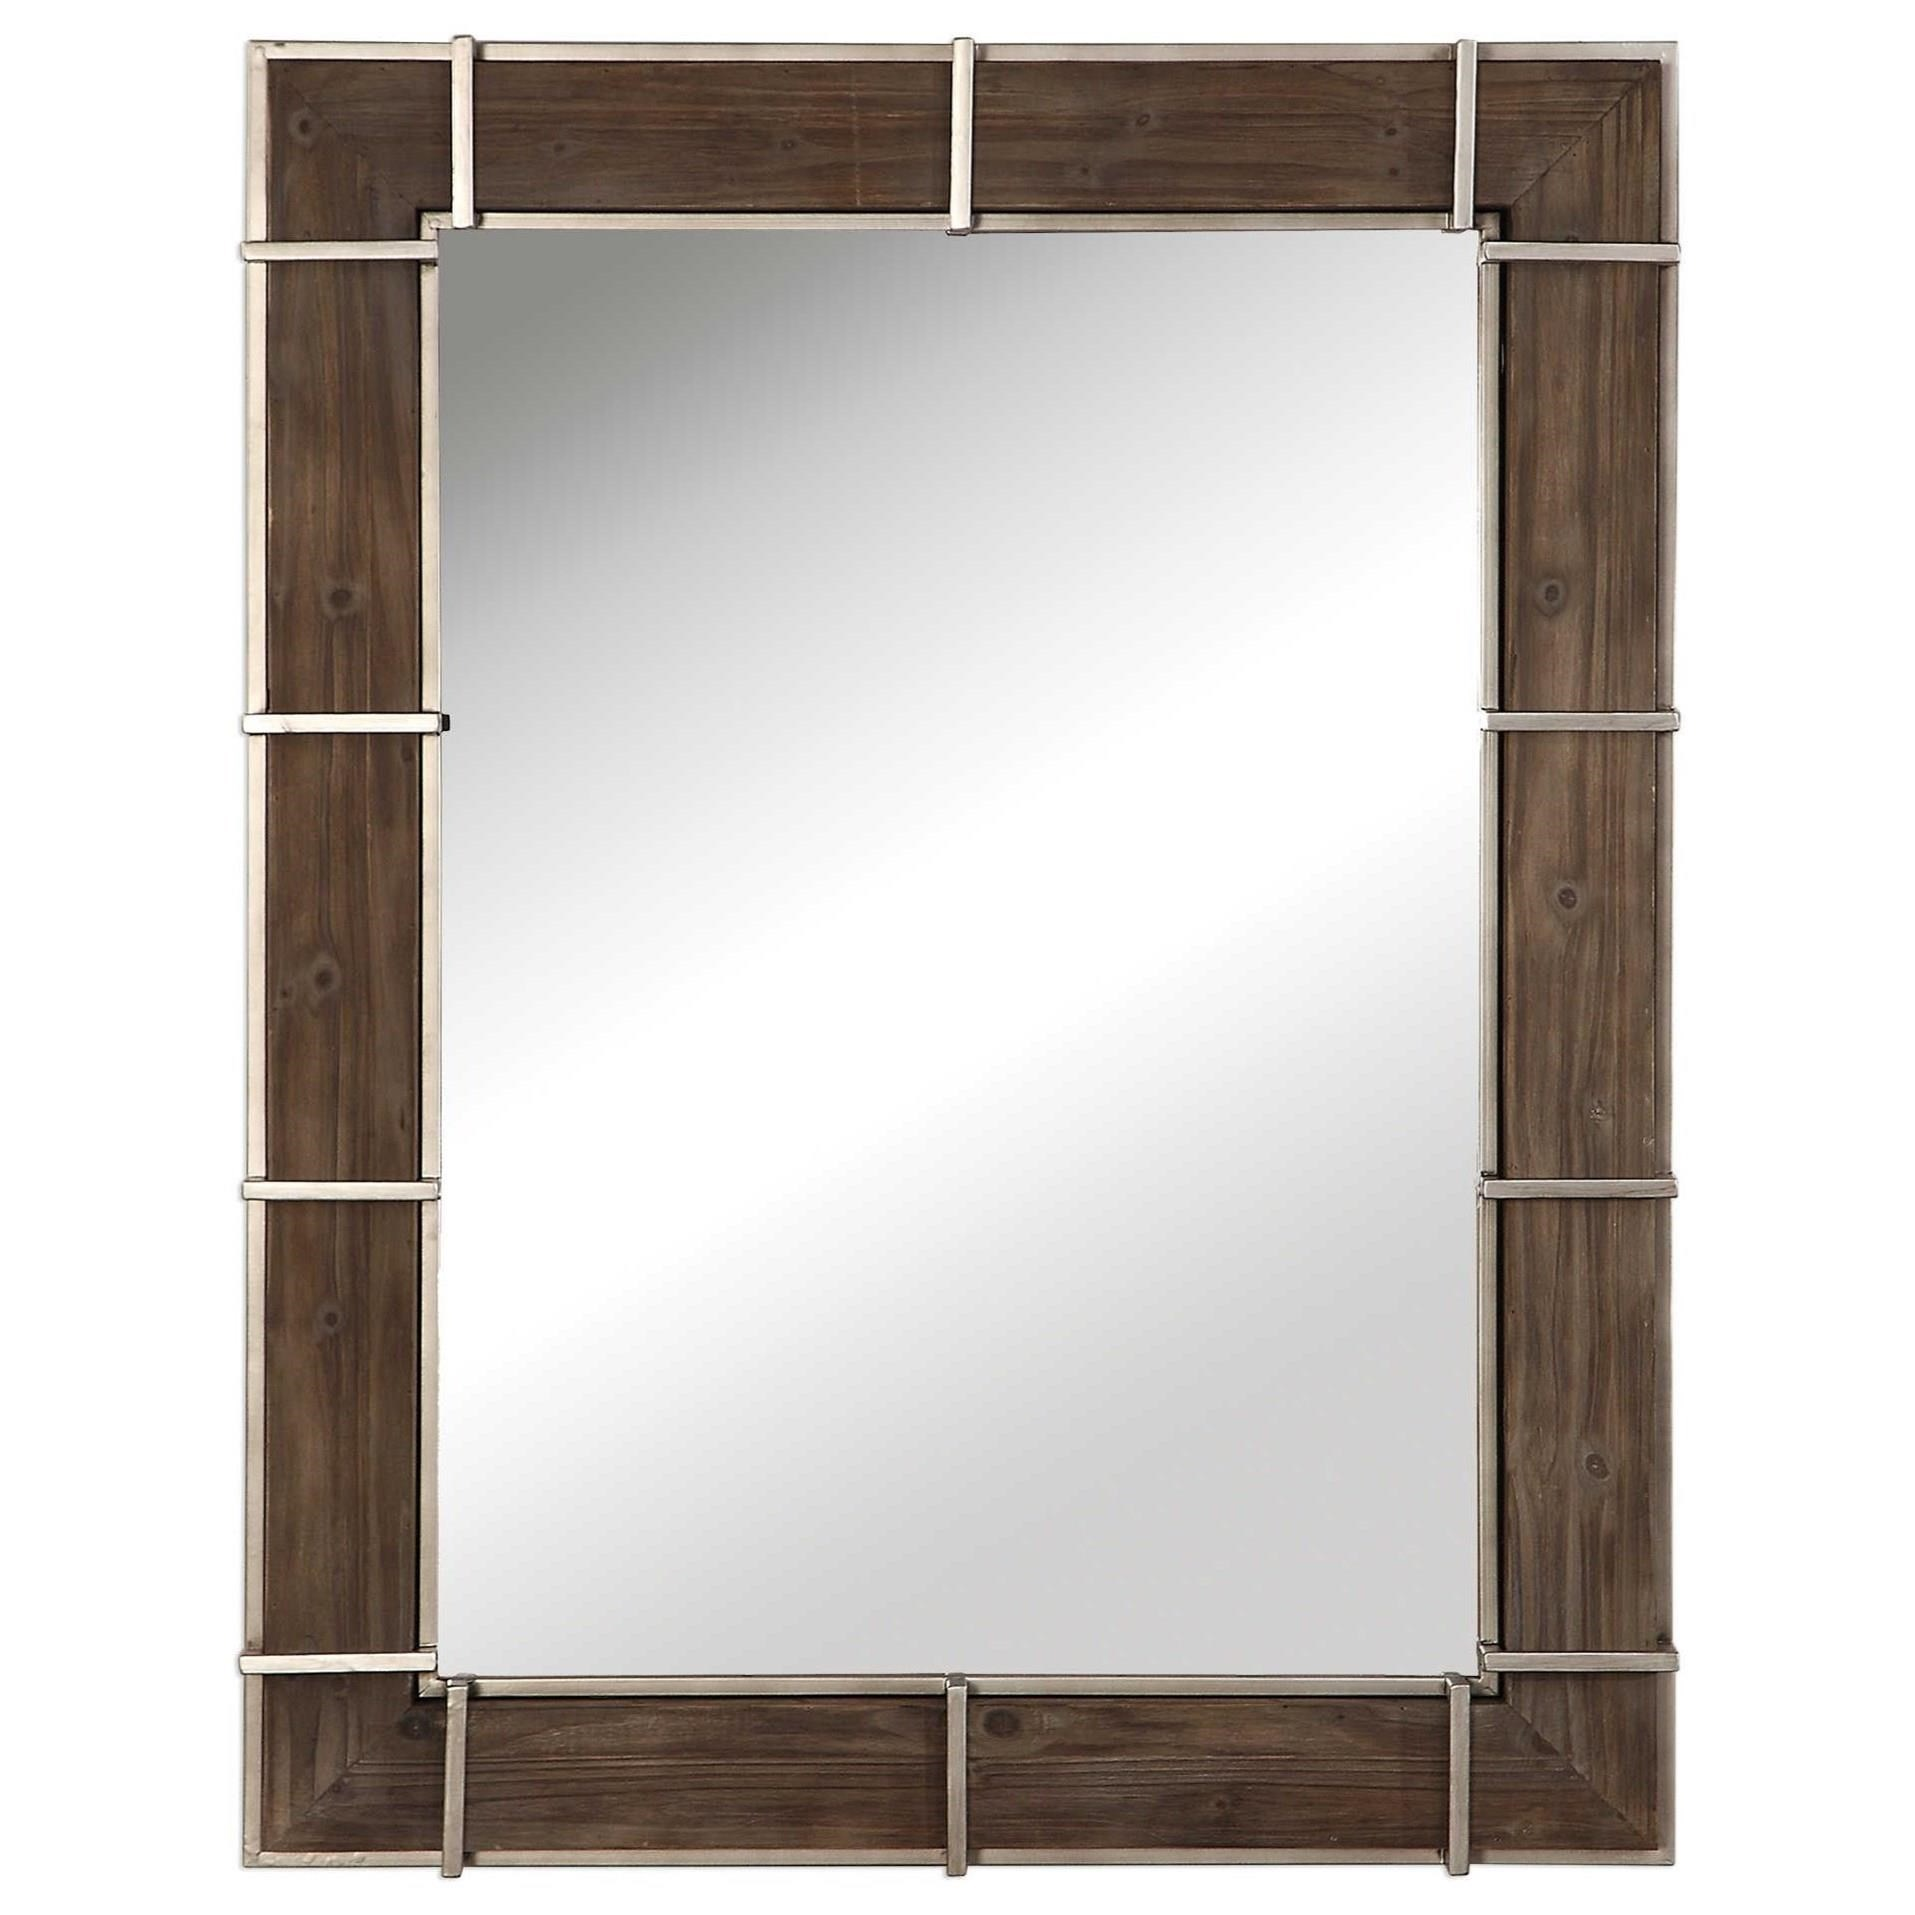 Wade Wooden Industrial Mirror